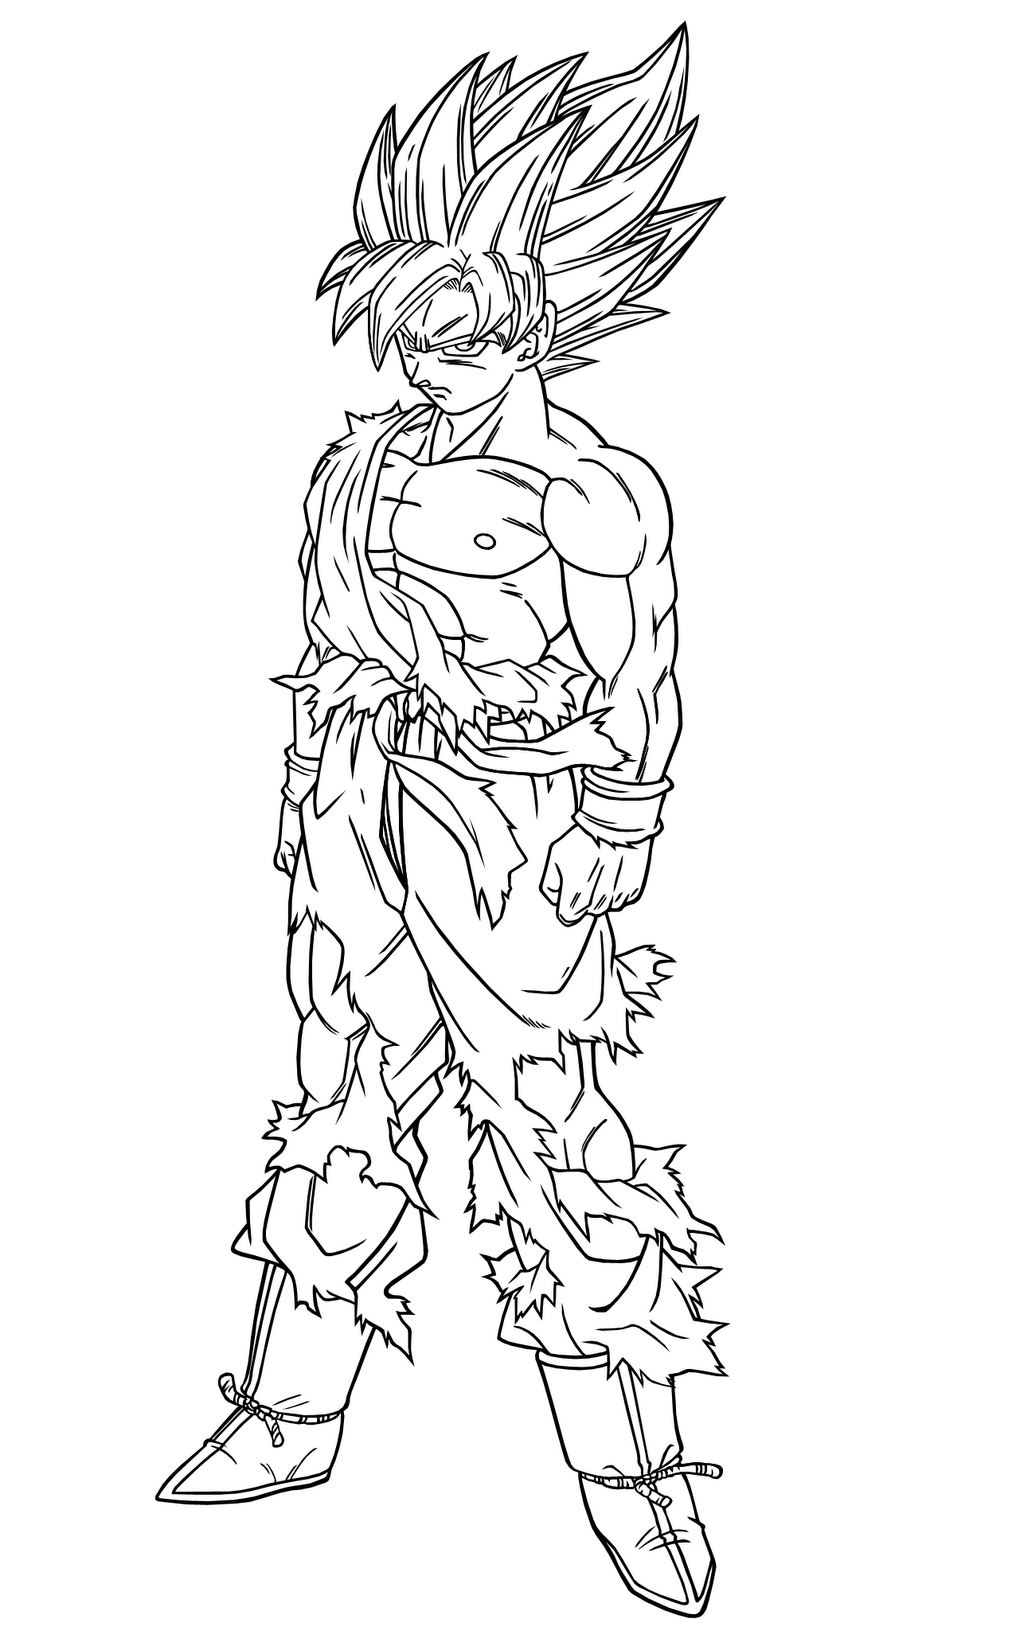 Songoku Super Saiyajin Dragon Ball Z Kids Coloring Pages